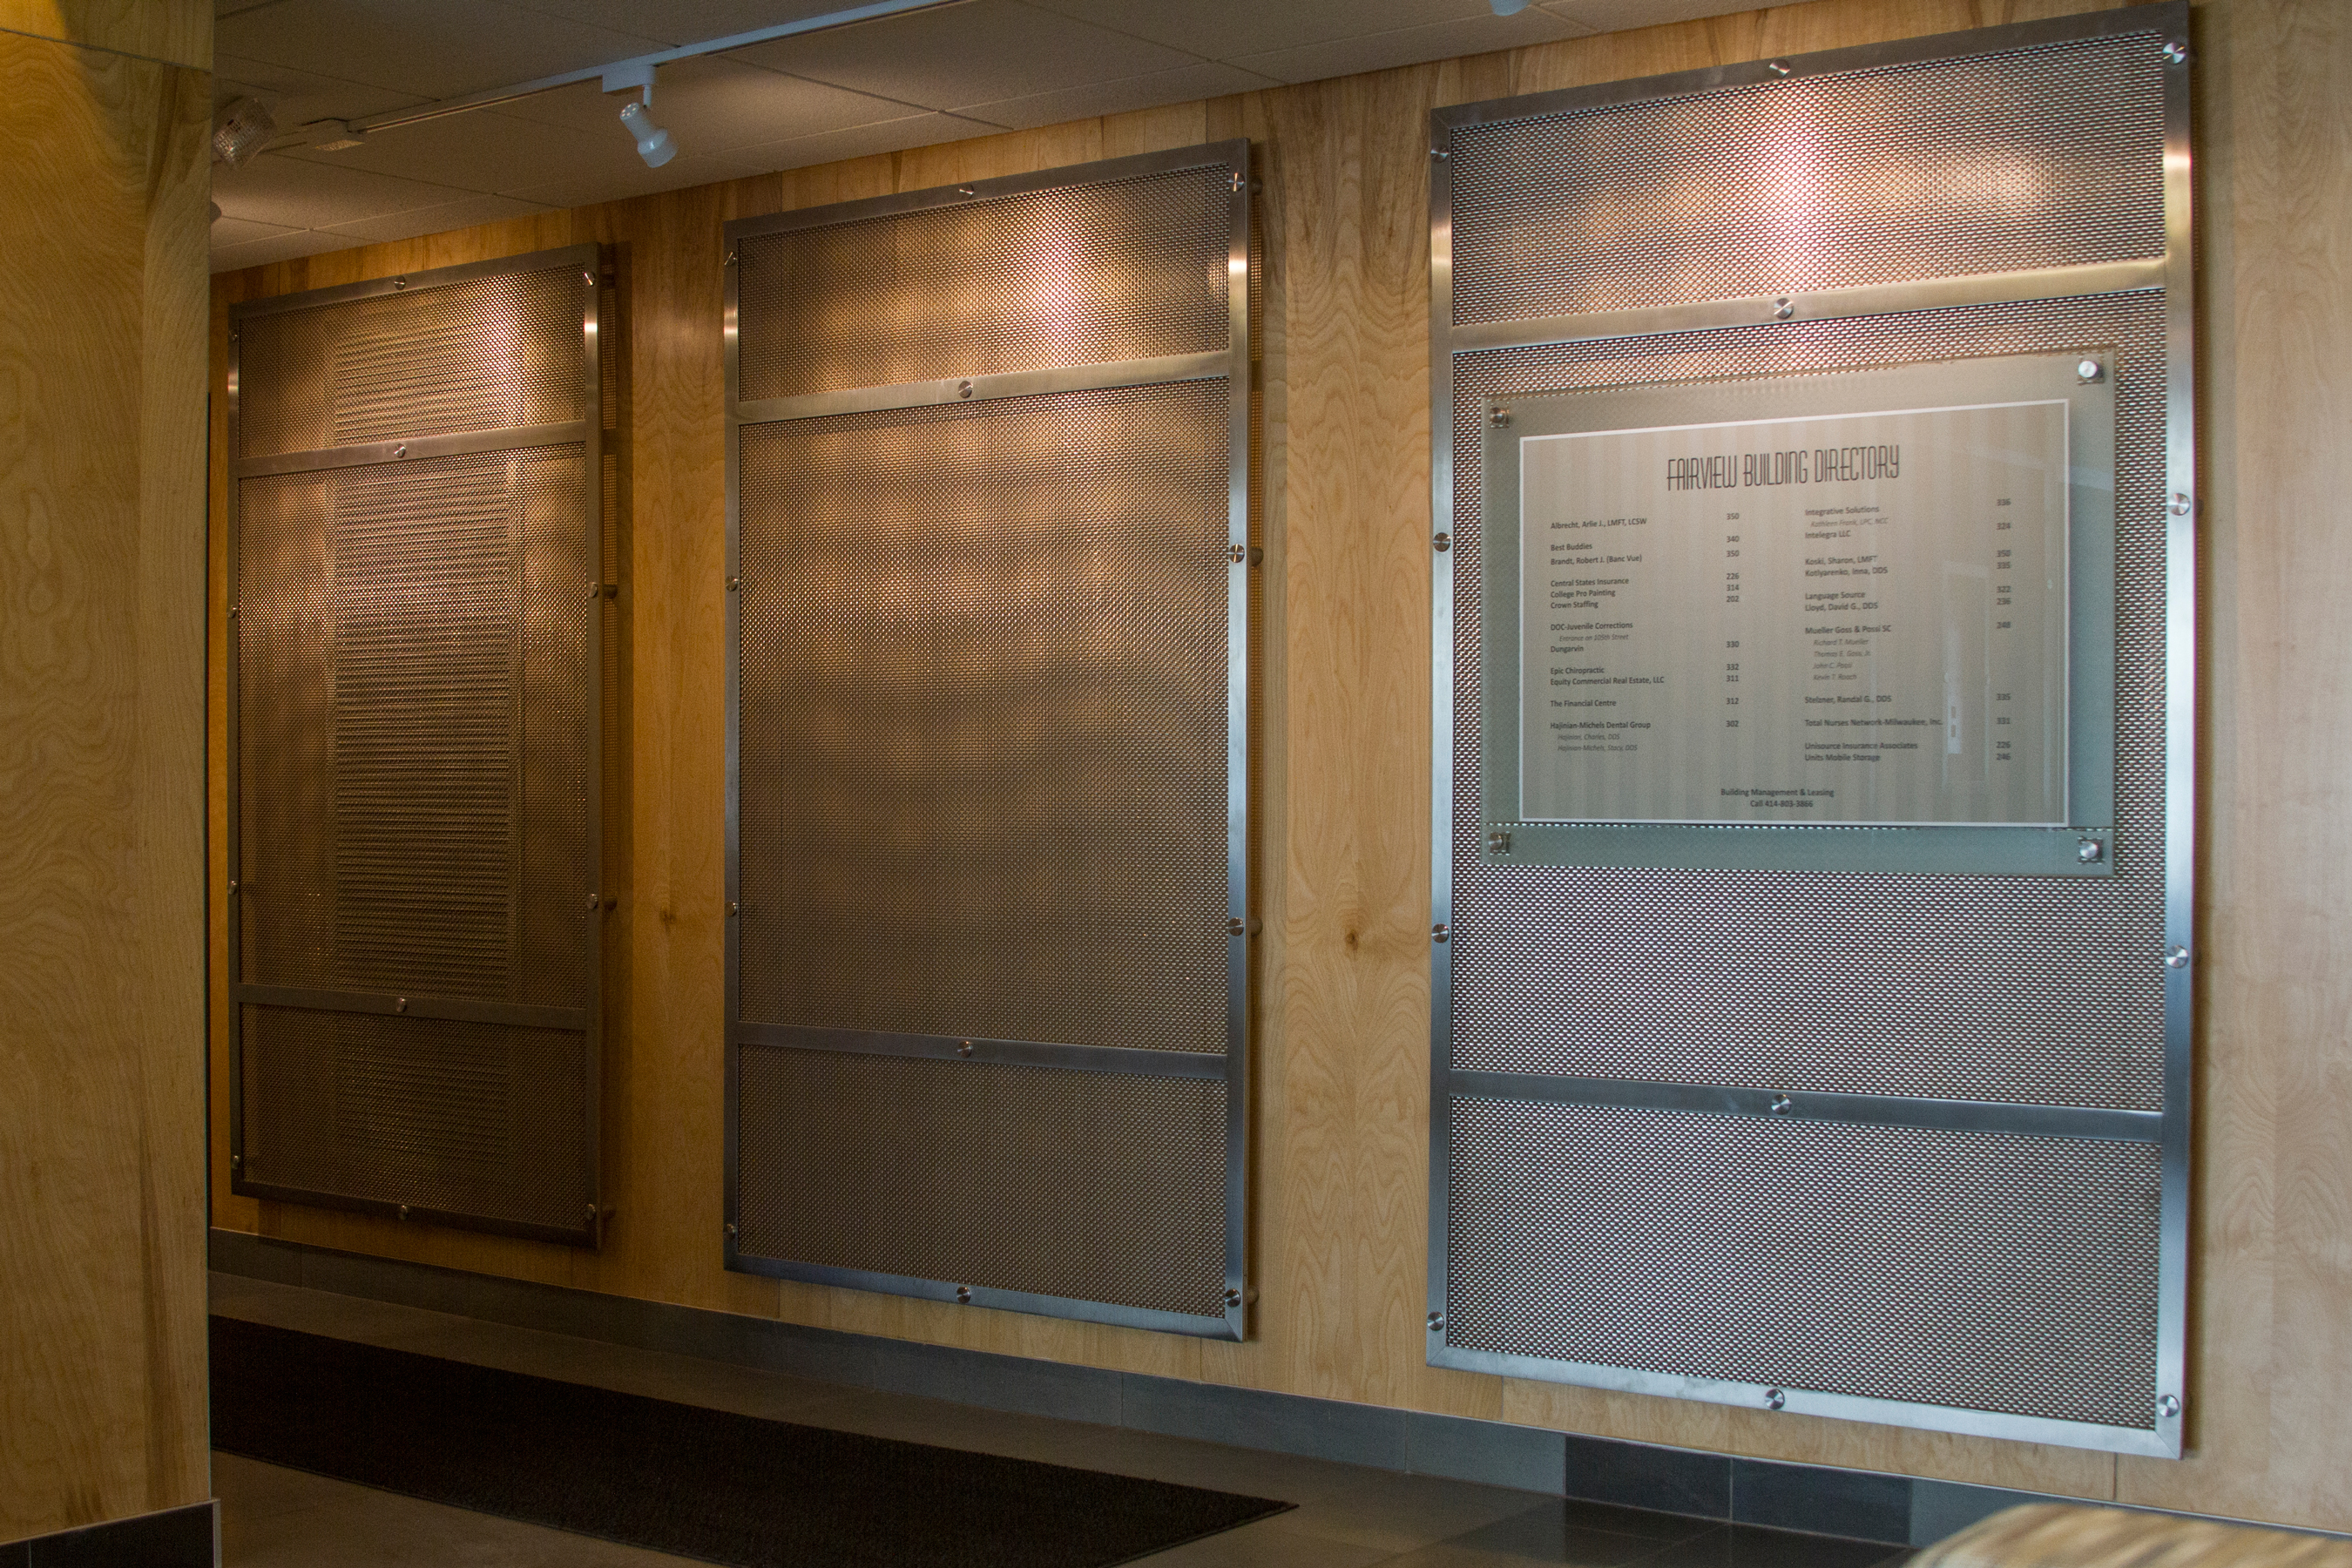 SZ-4 woven wire mesh pattern in stainless steel, framed by the Versatile Spine, fits the requirement of this project.